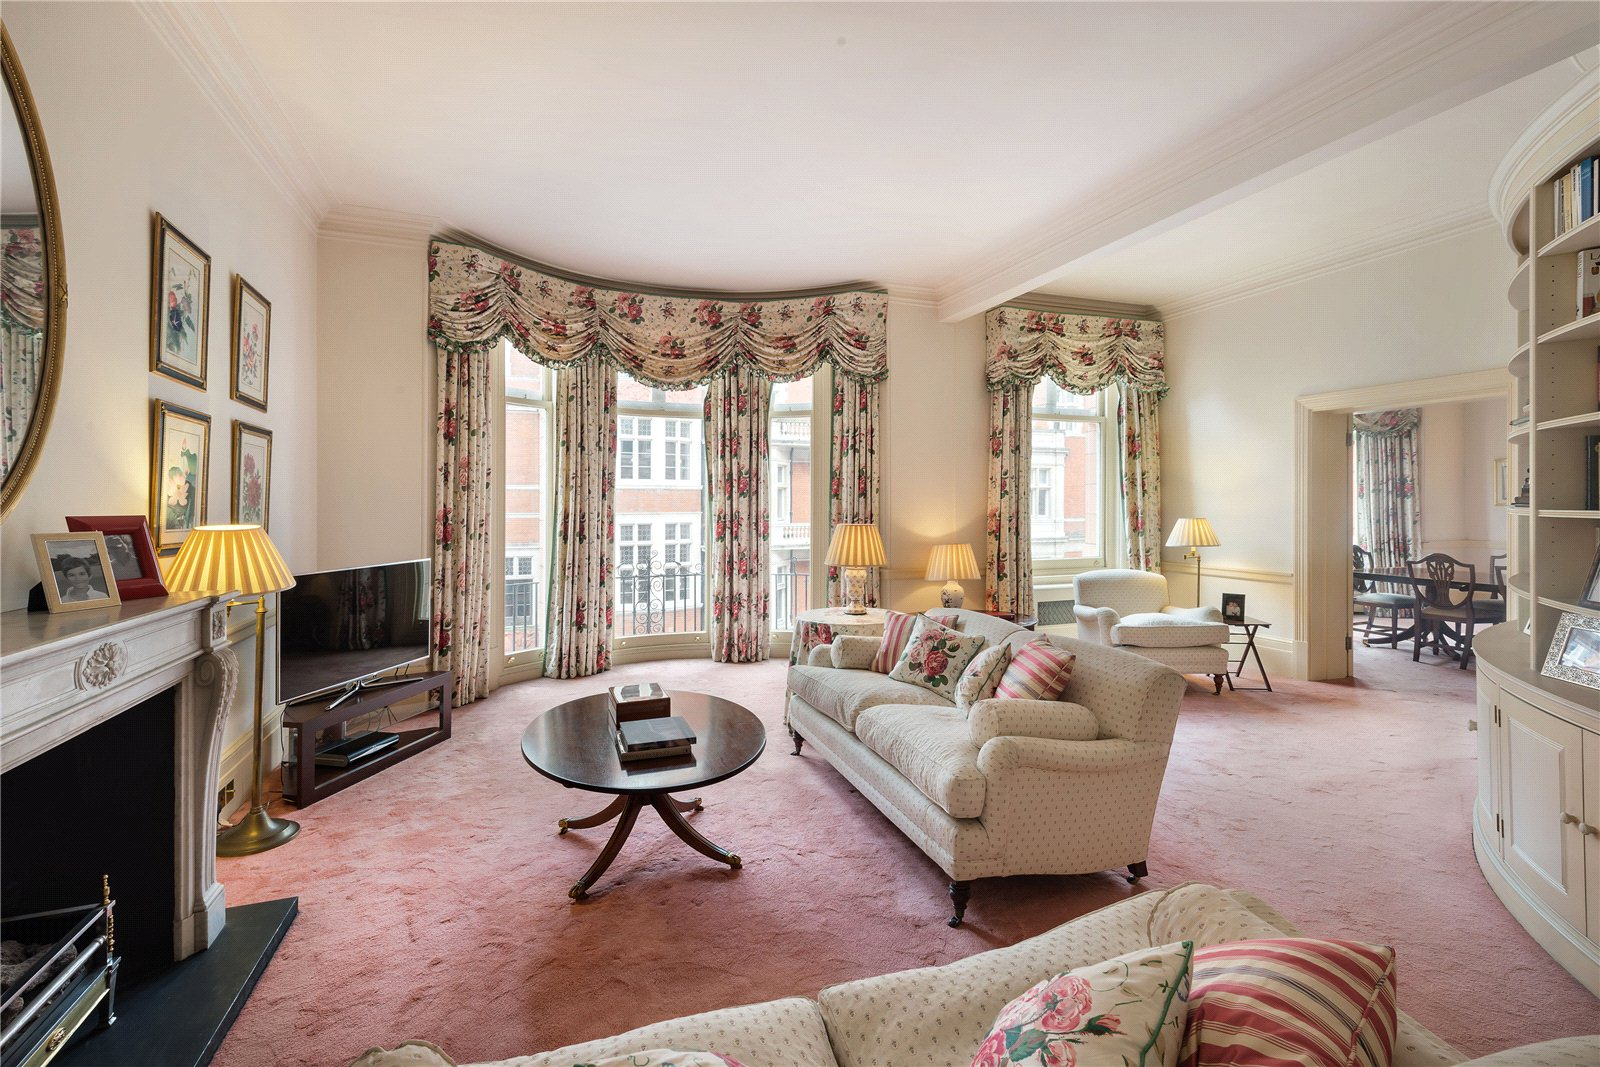 Appartements / Flats pour l Vente à Mount Street, London, W1K London, Angleterre